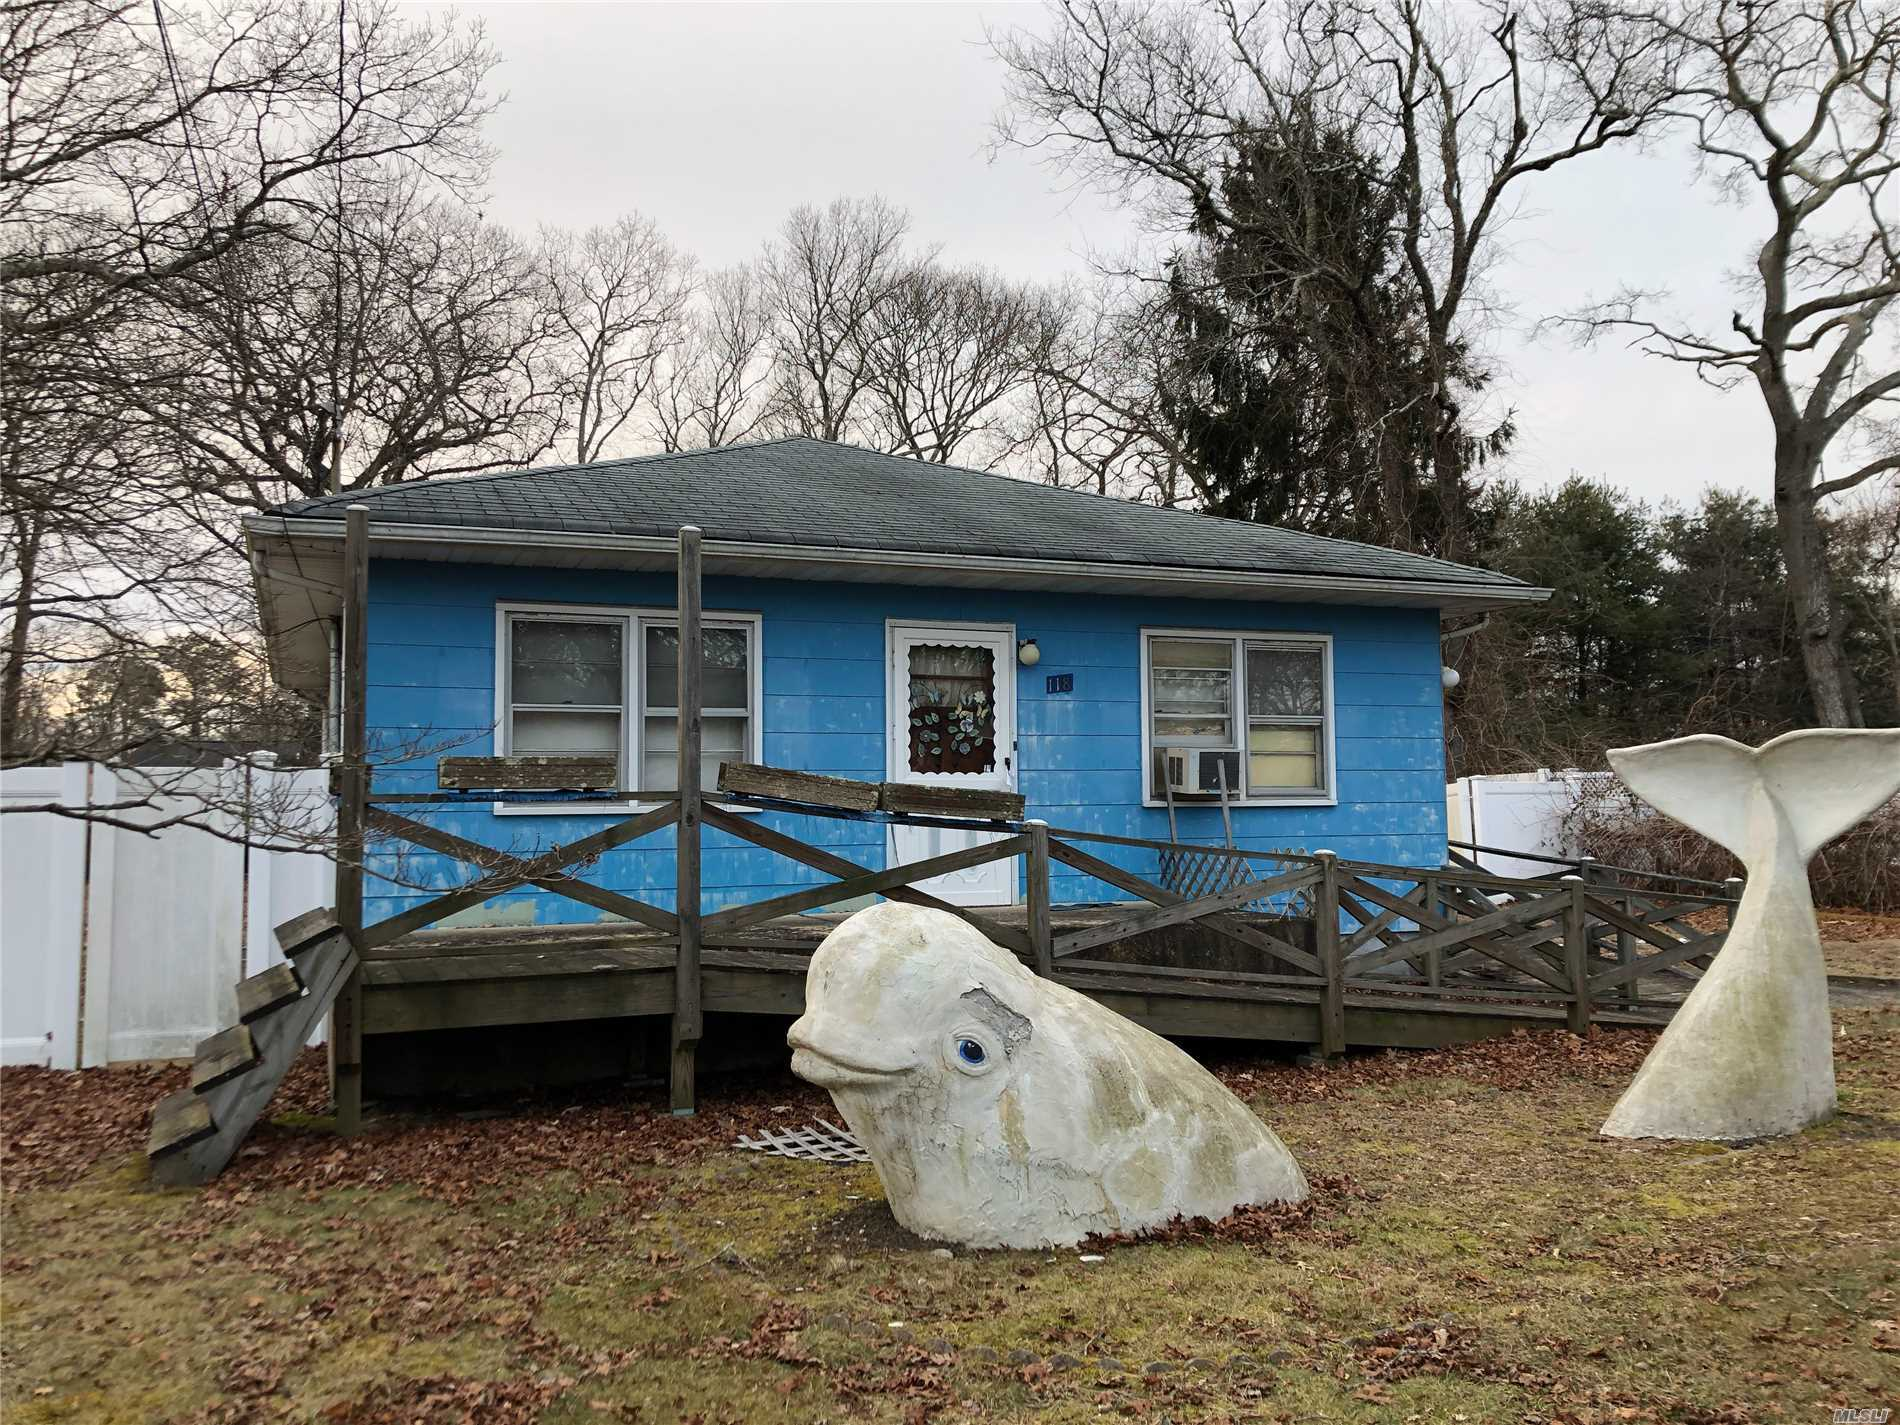 Great Bones On This Cute 2-Bedroom Ranch Offering Hardwood Floors, Huge Eik, Large Lr, Full Bth, Basement And Detached Garage Being Used As Art Studio! Updated Electric Panel Box. House Being Sold As Is With No Representations Or Warranties. Great Opportunity. Close To Parks And Beach!